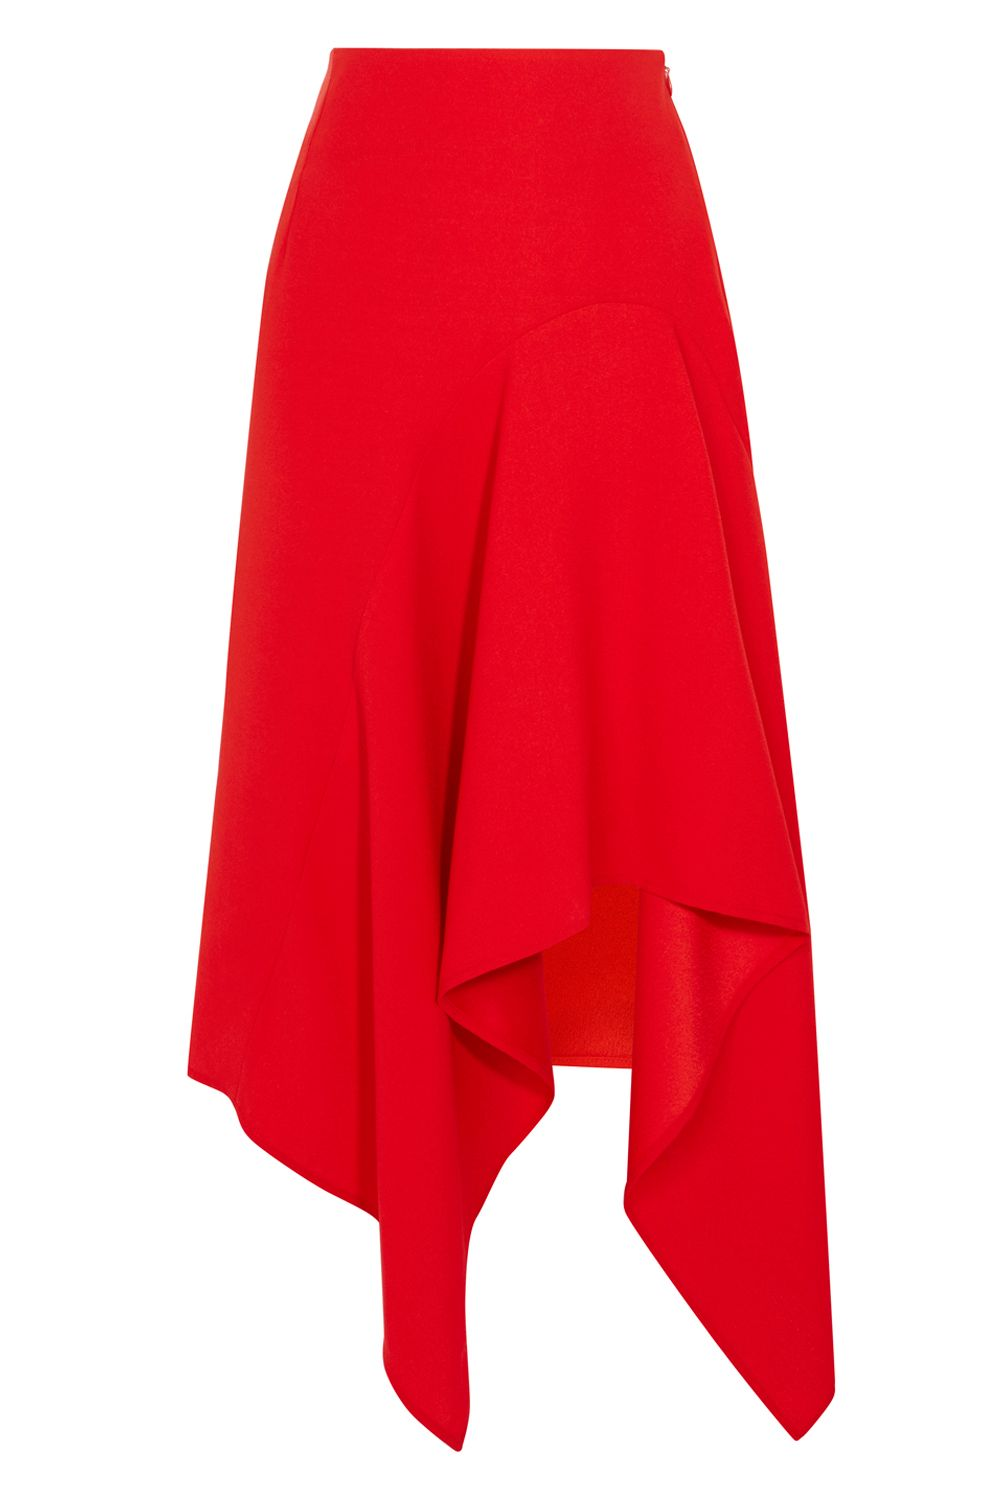 Coast Saira Asymmetric Skirt, Red